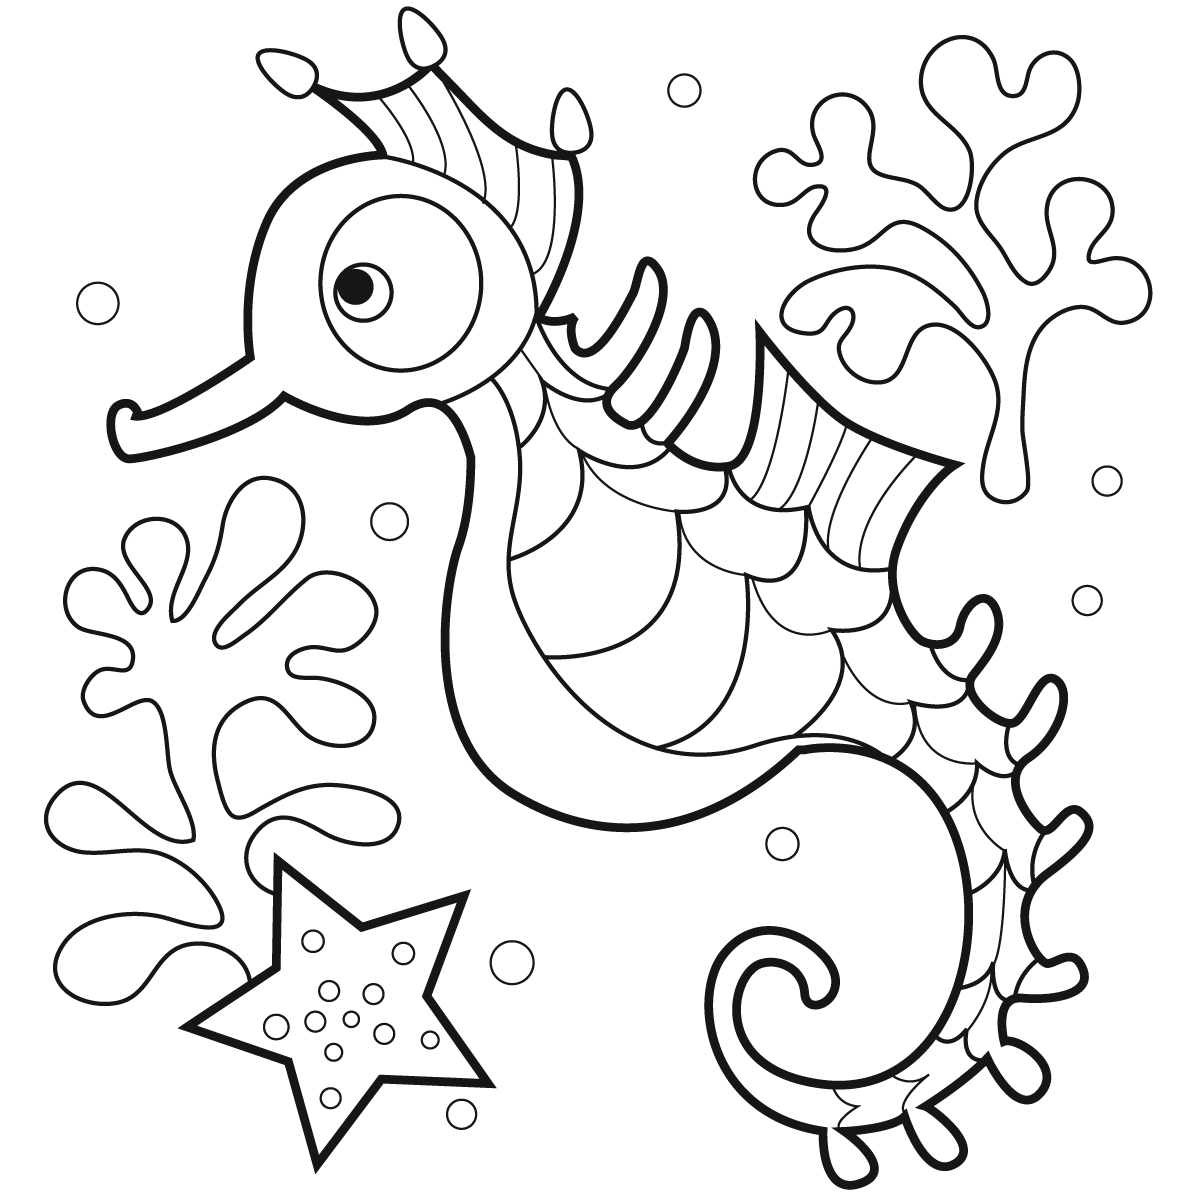 coloring pages of the ocean - free printable seahorse coloring pages for kids